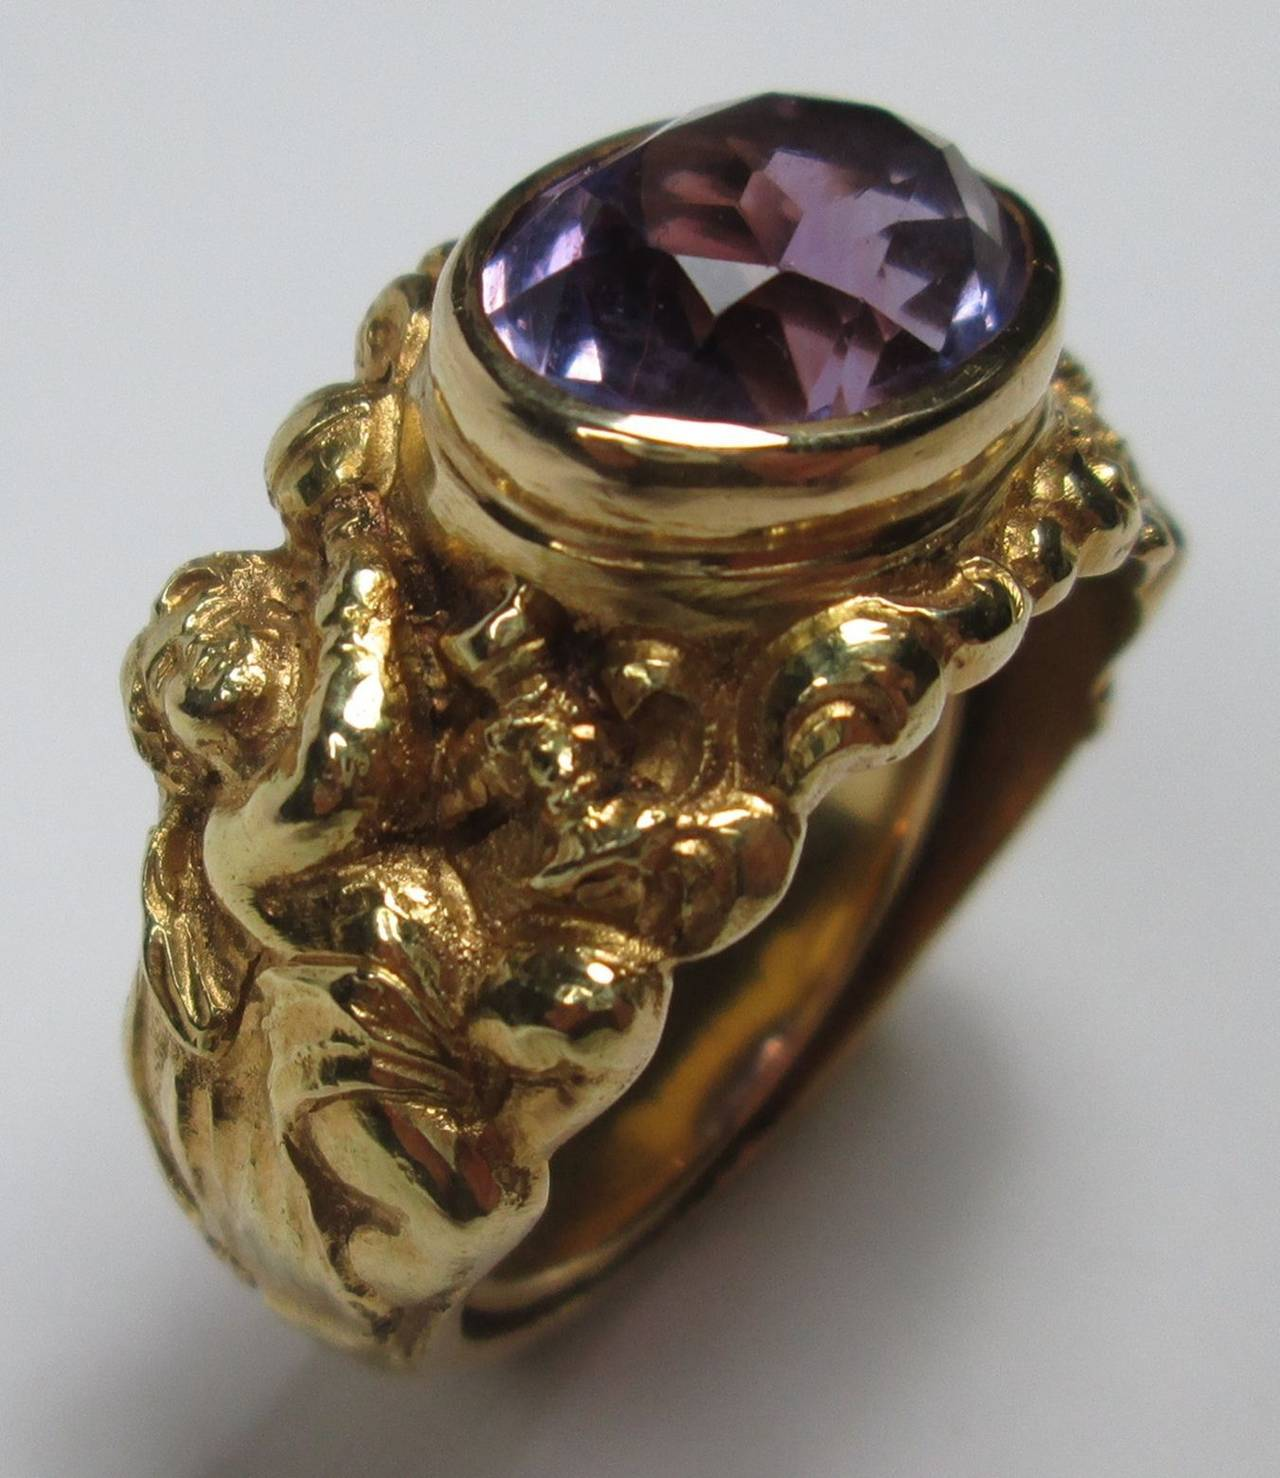 amethyst ring vintage - photo #34